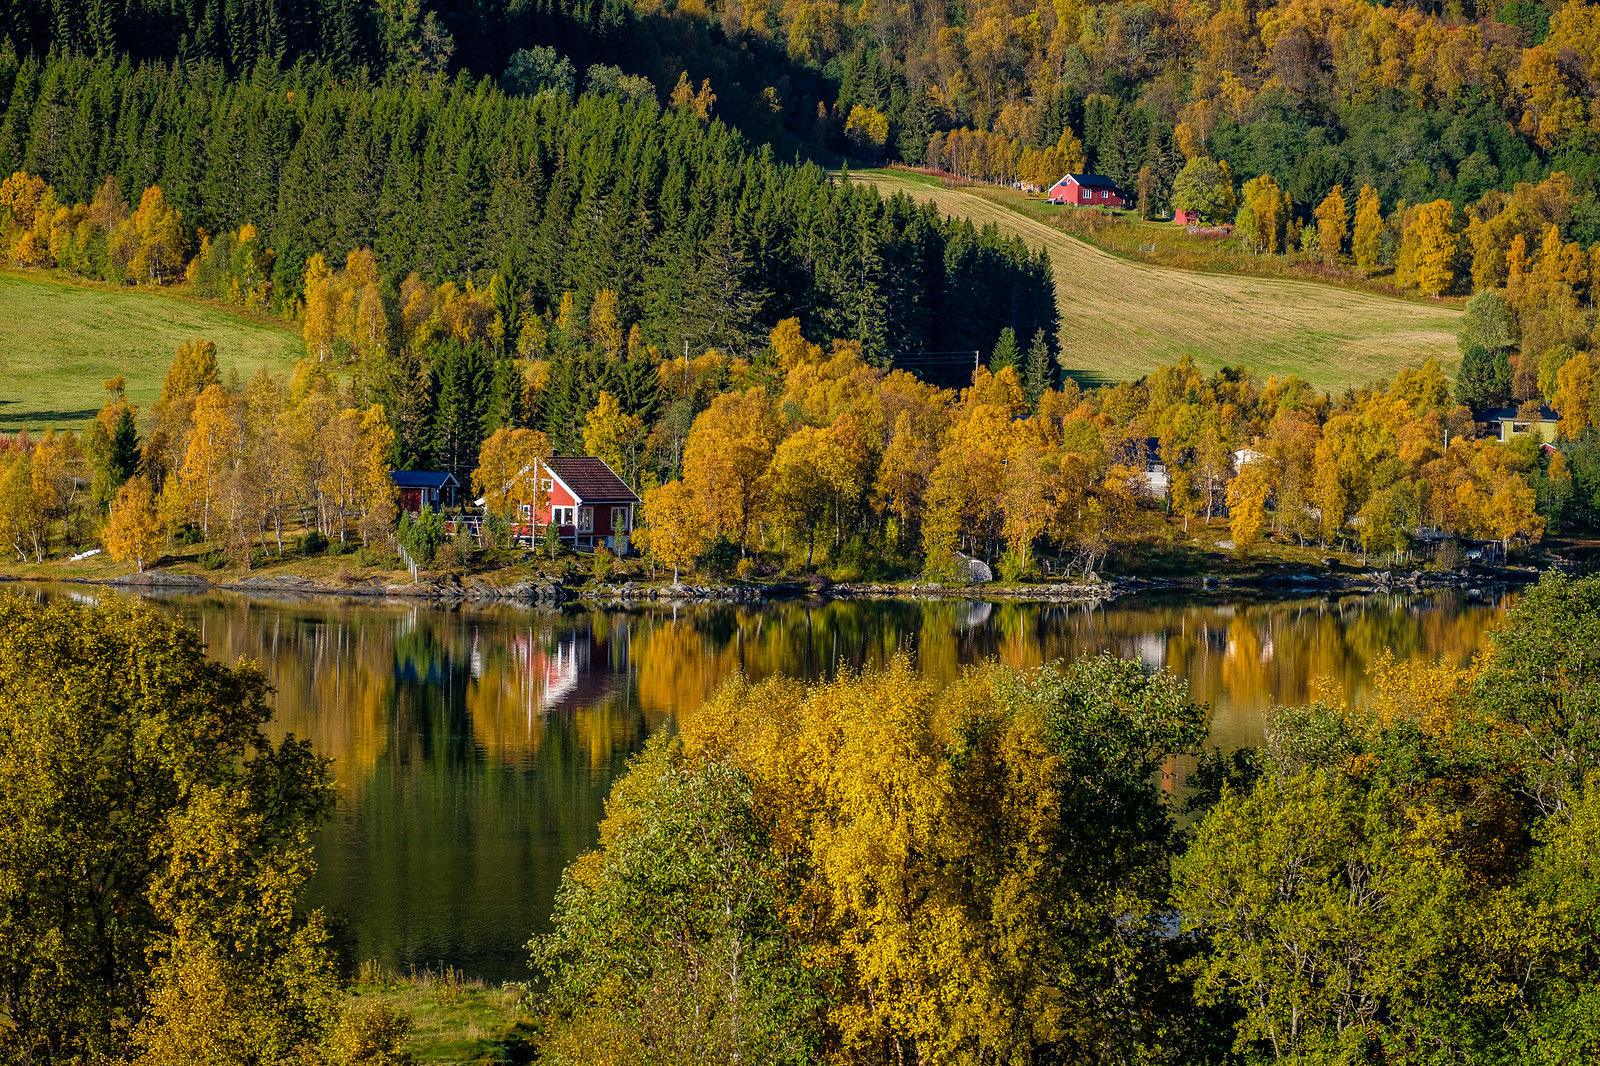 Autumn colours in Straumsbotn.